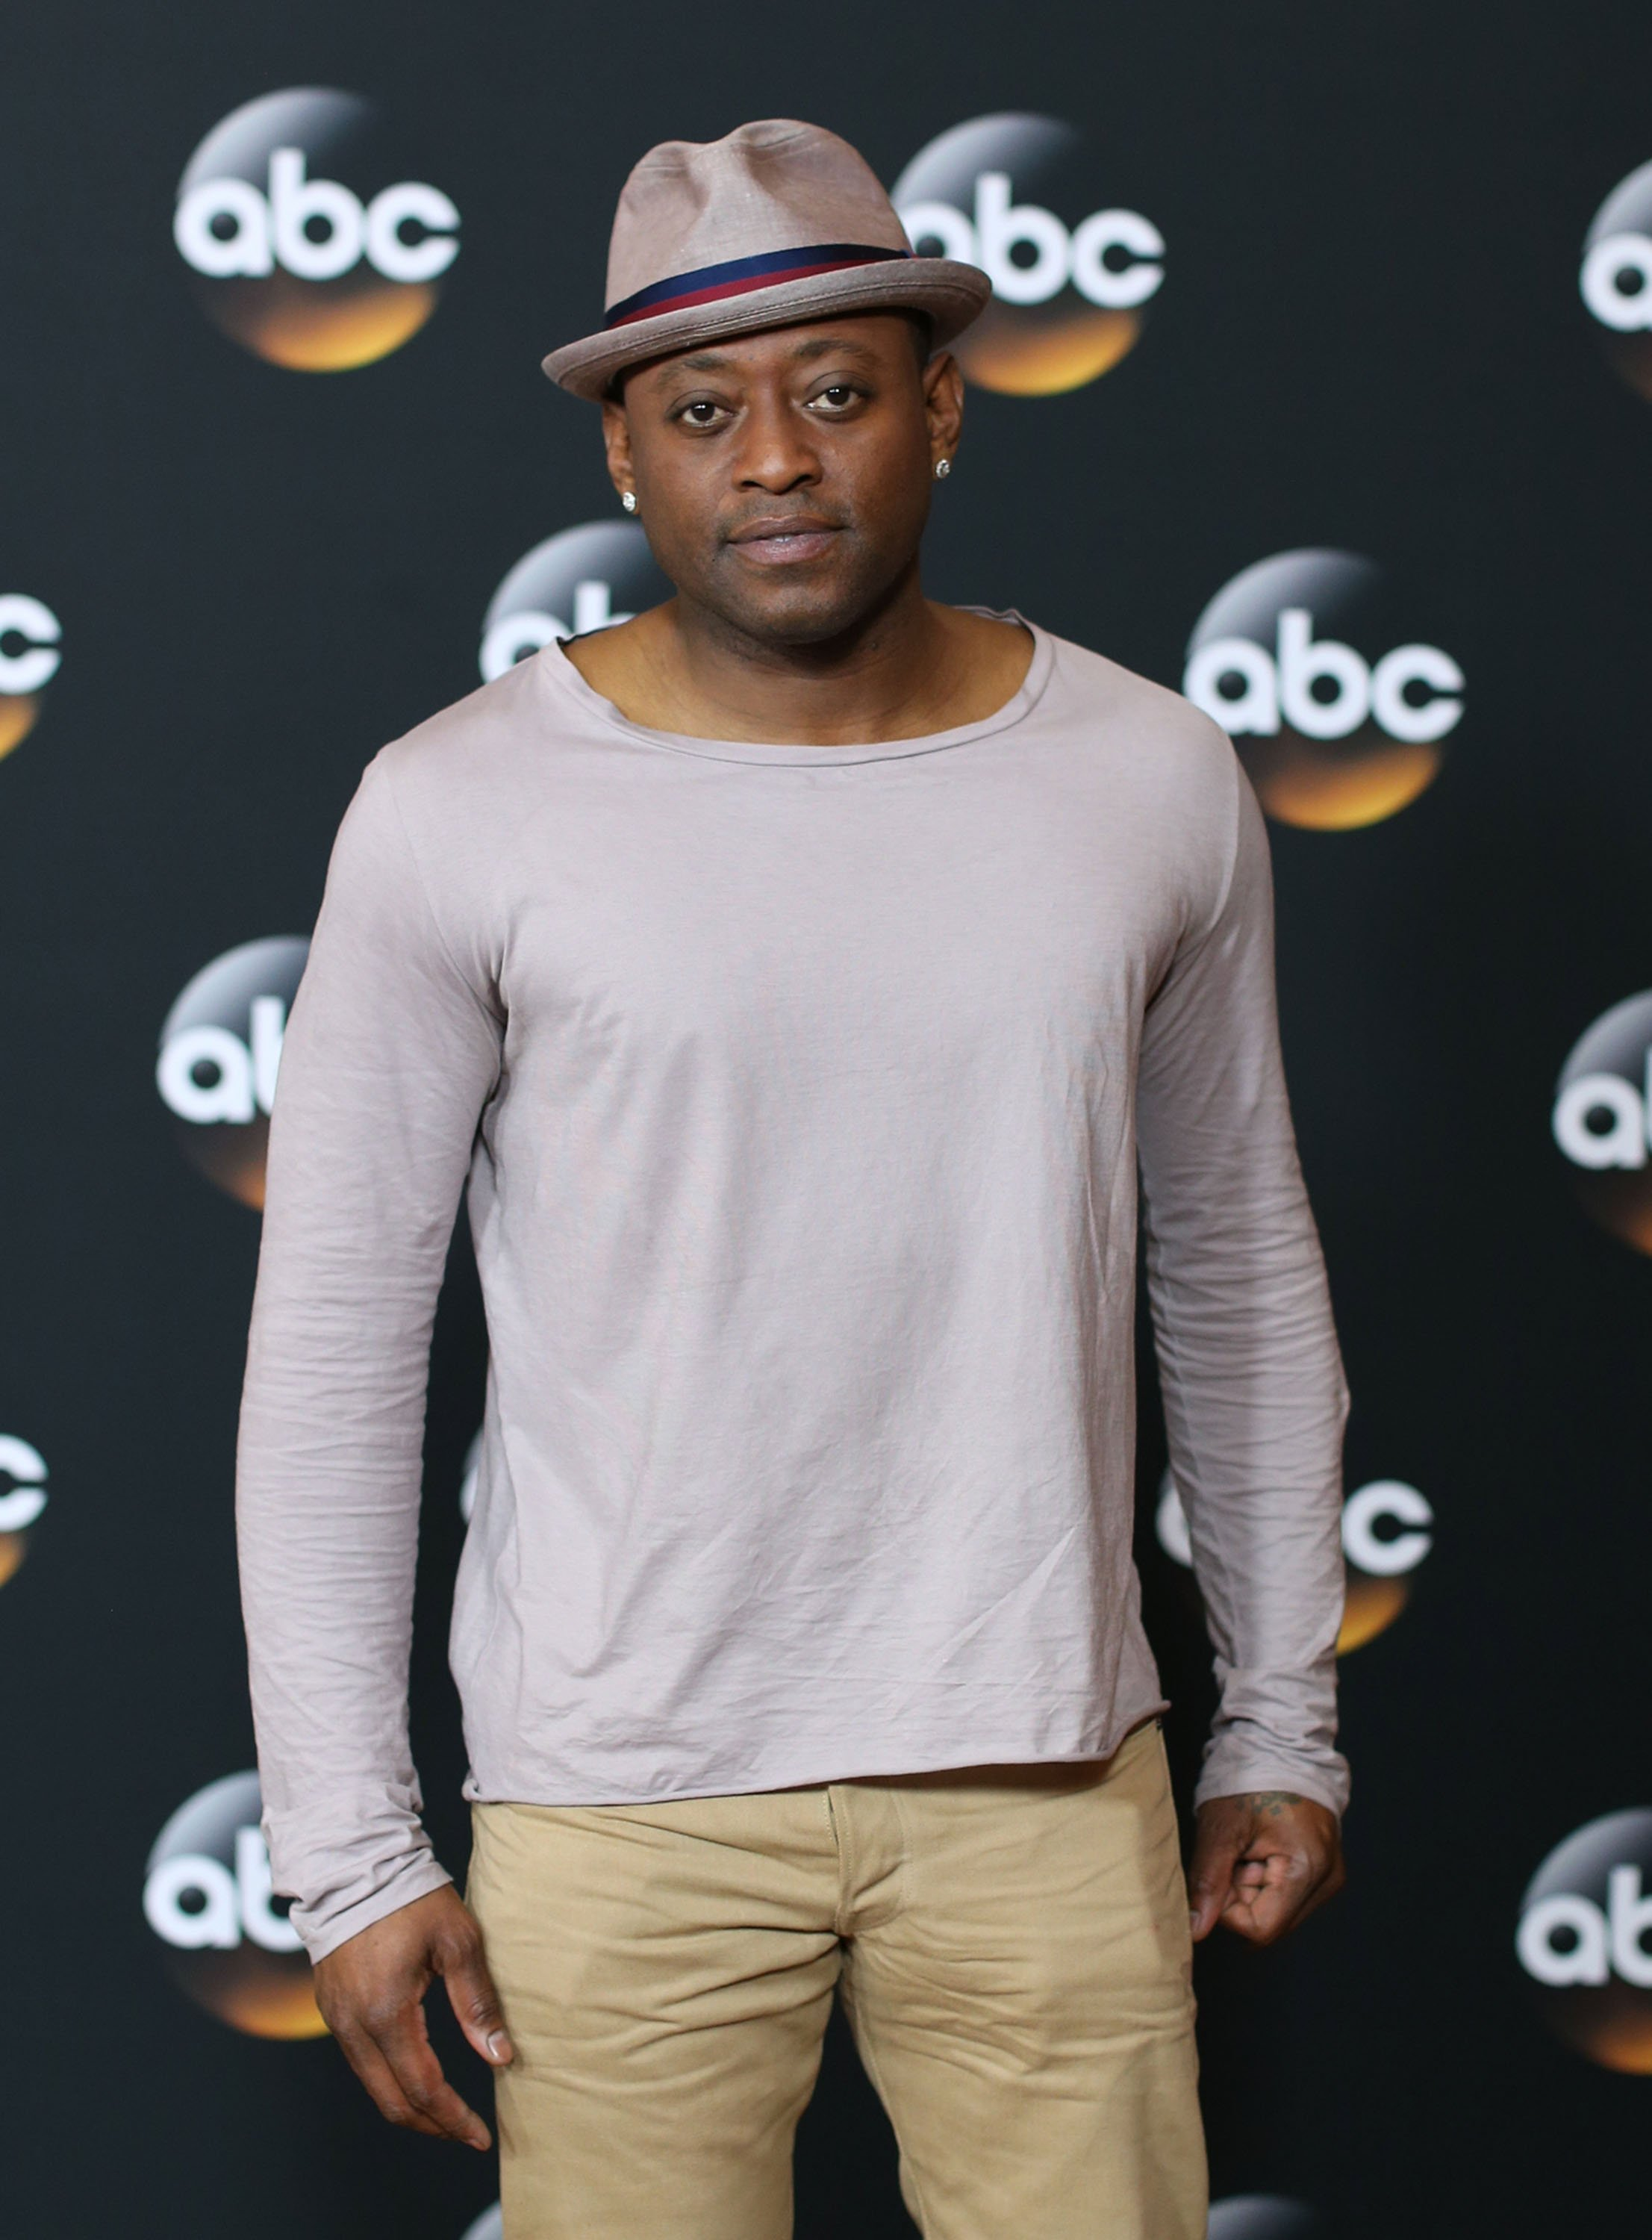 Omar Epps attends the Disney & ABC Television Group's TCA Summer Press Tour on July 15, 2014  | Photo: GettyImages